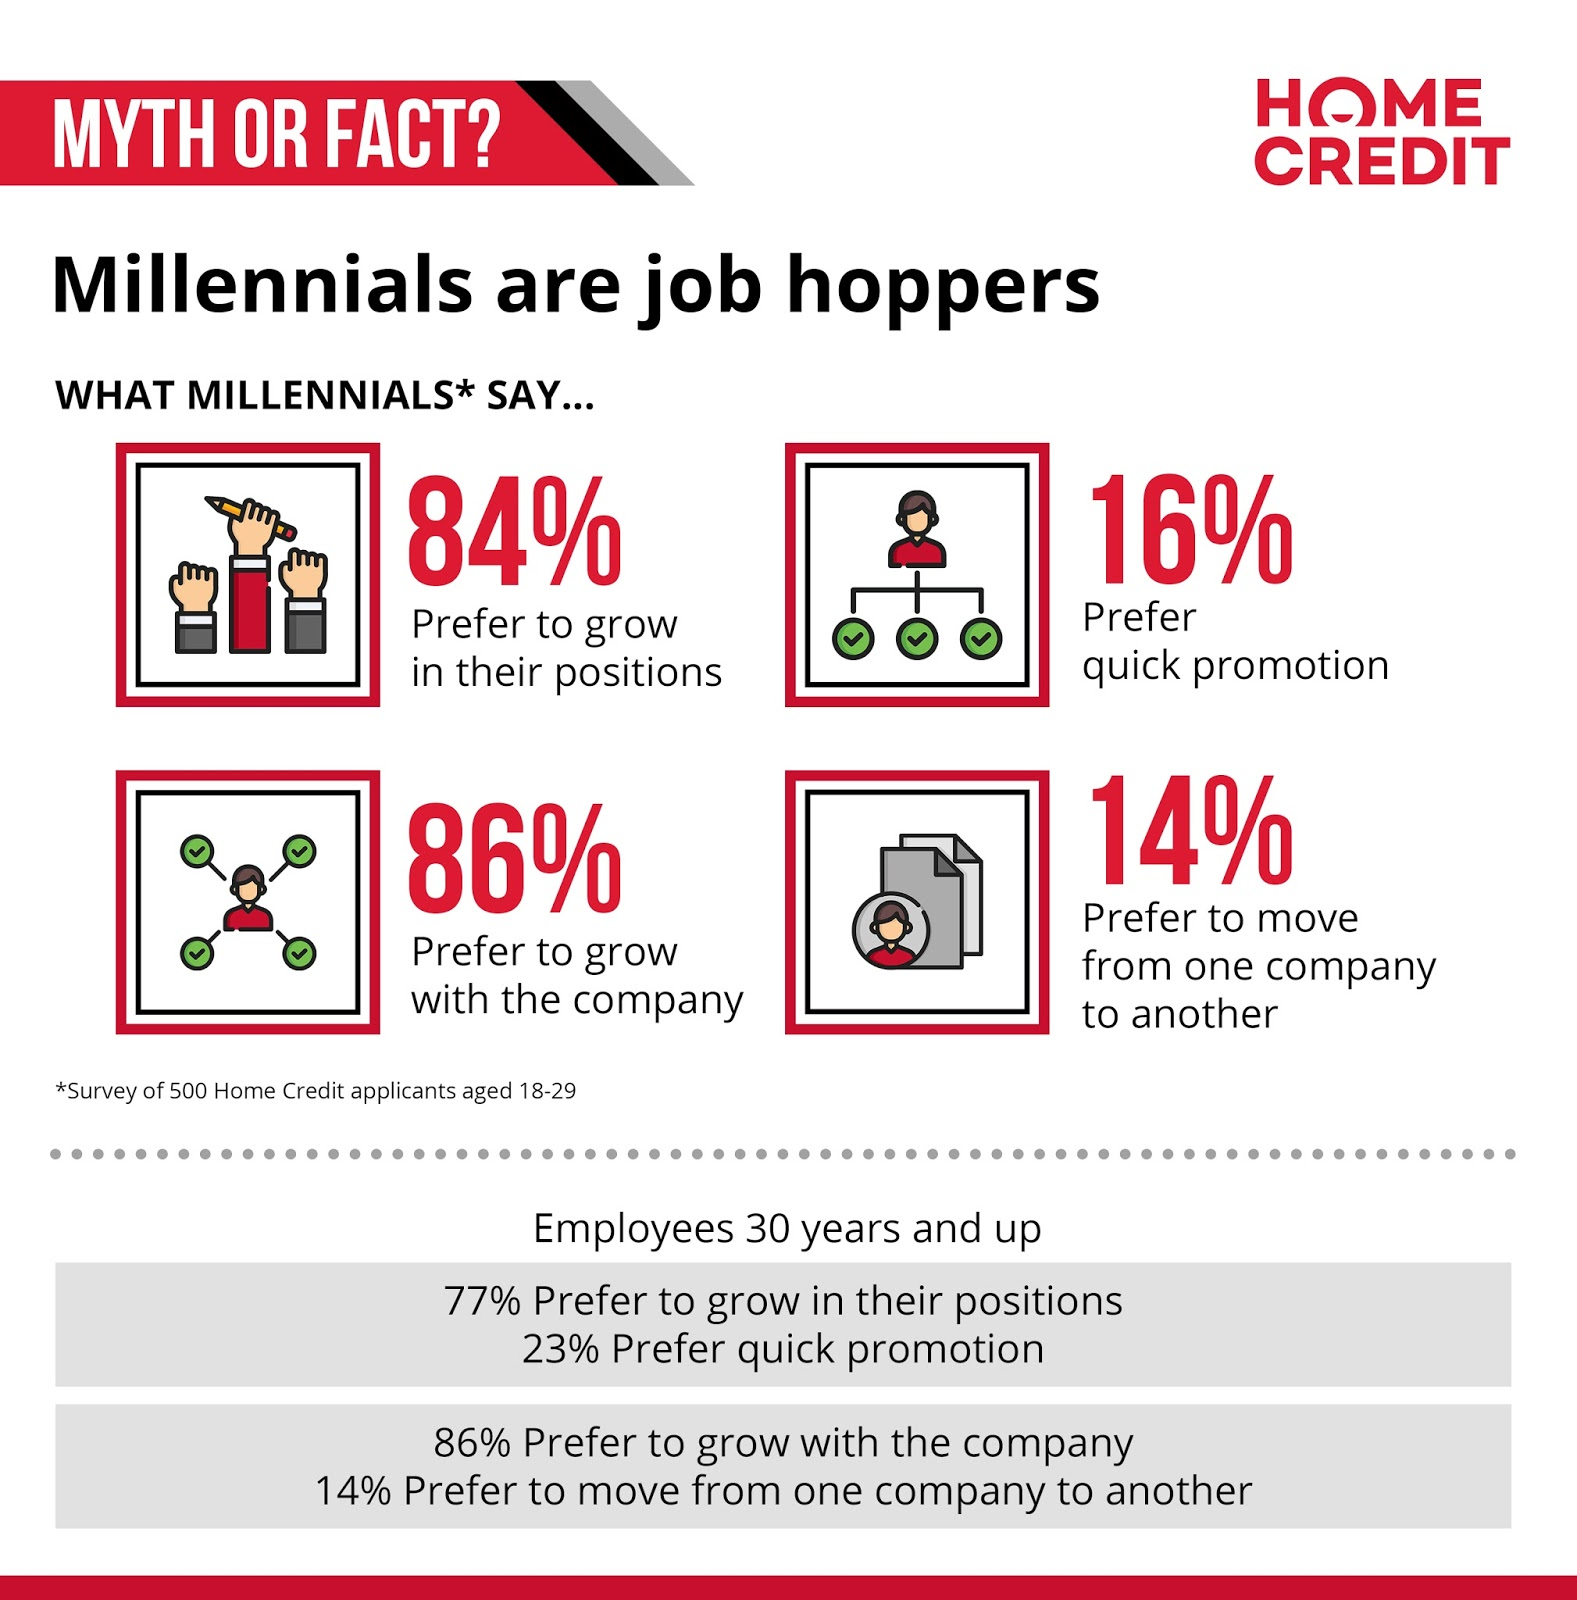 facts about millennials